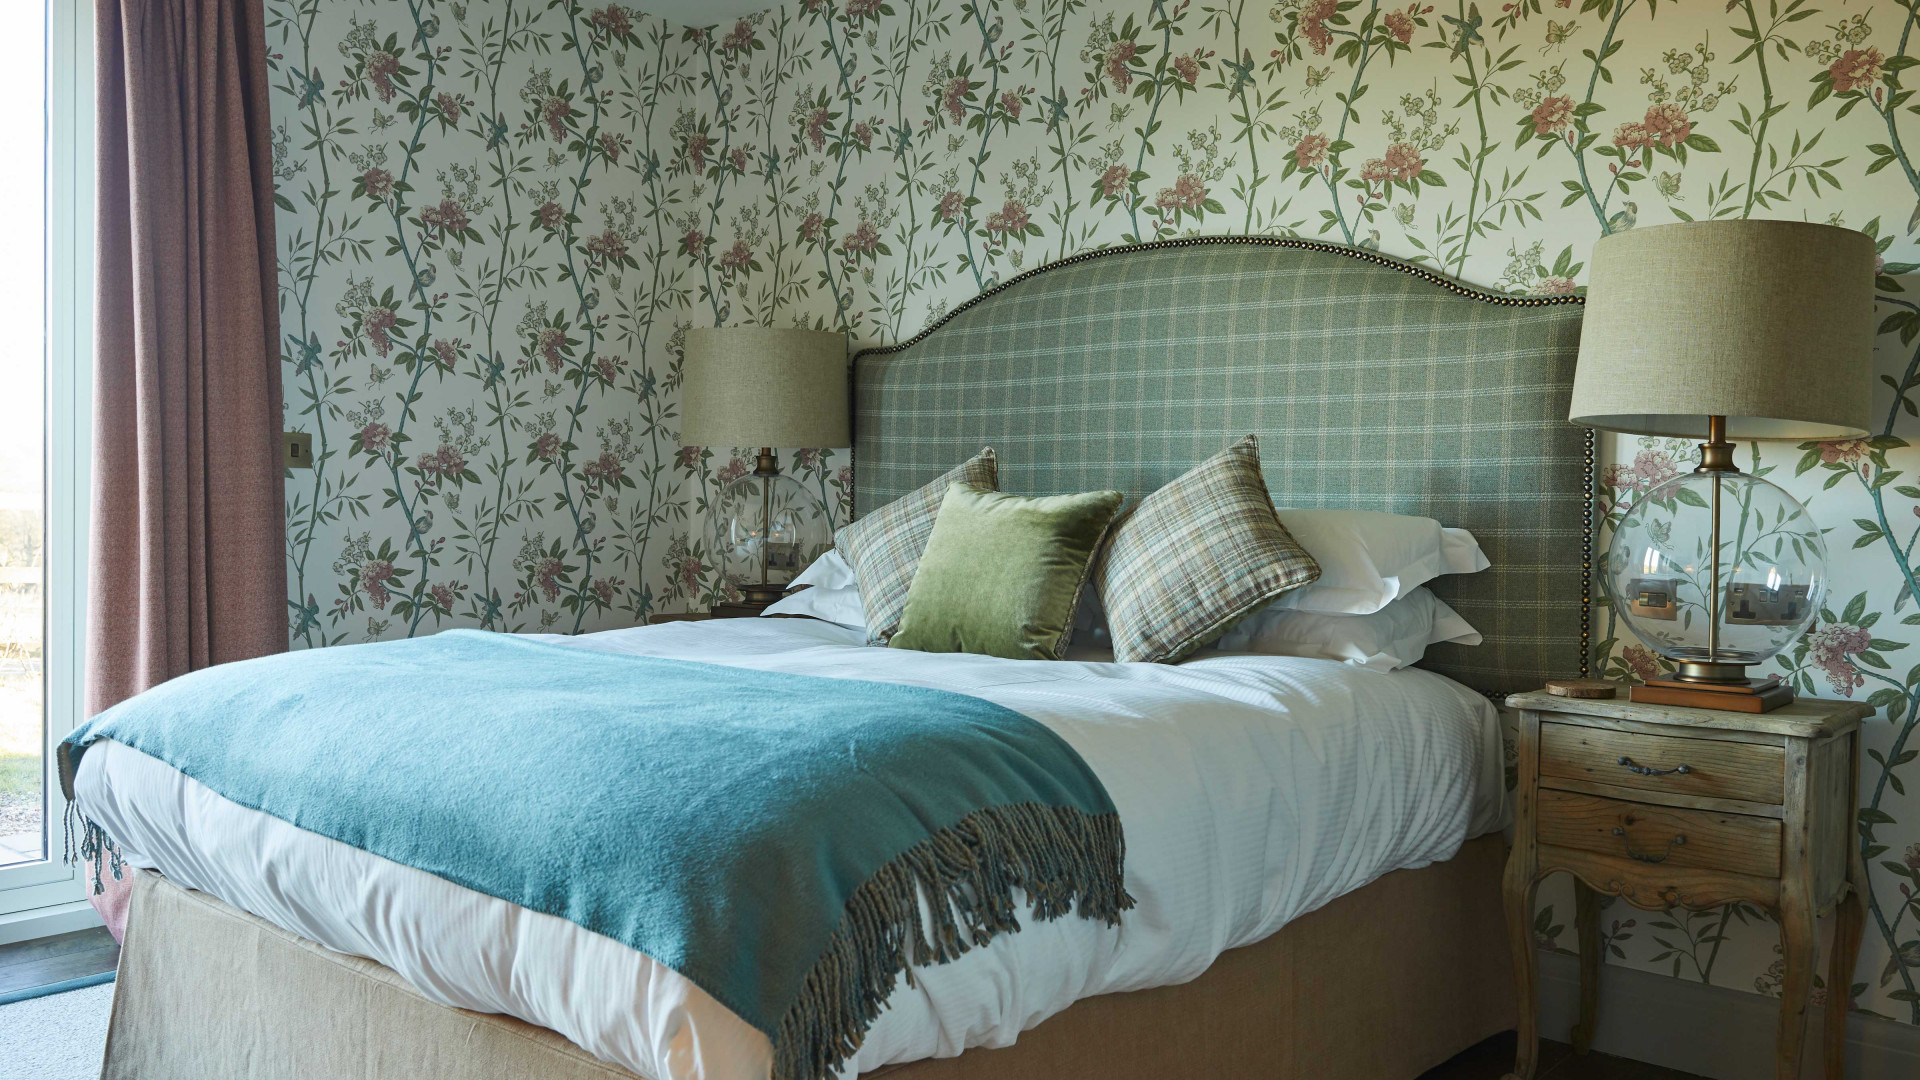 The Duncombe Arms | A guest room